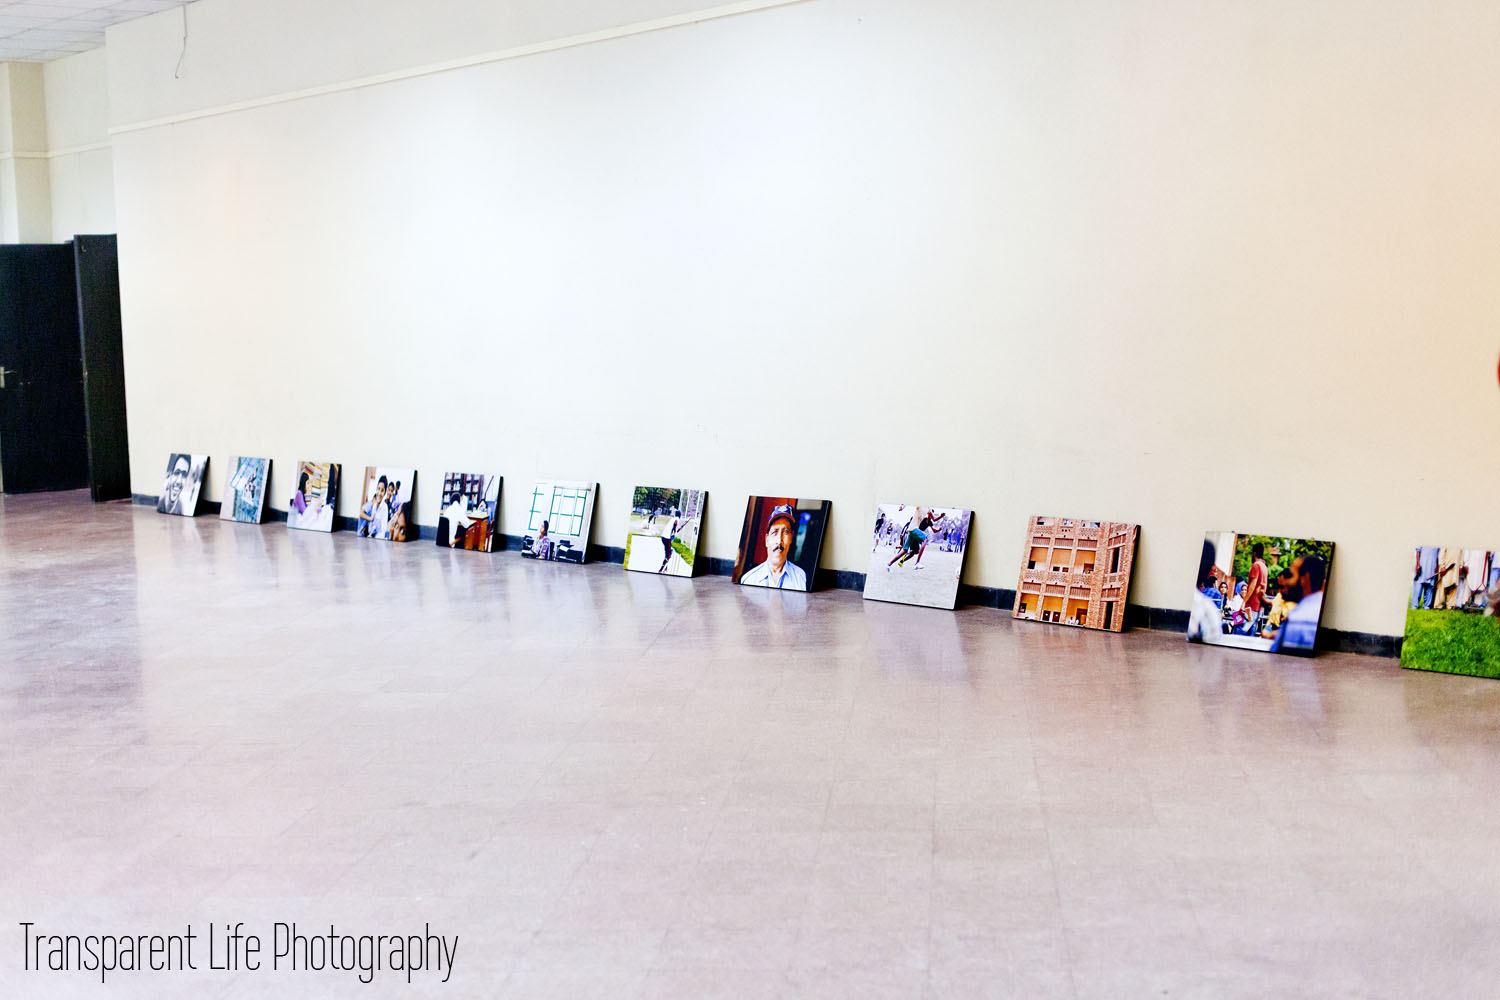 When we were setting up for the event, we found laying the pictures down in the order with the spacing that we wanted, was easiest for hanging them.